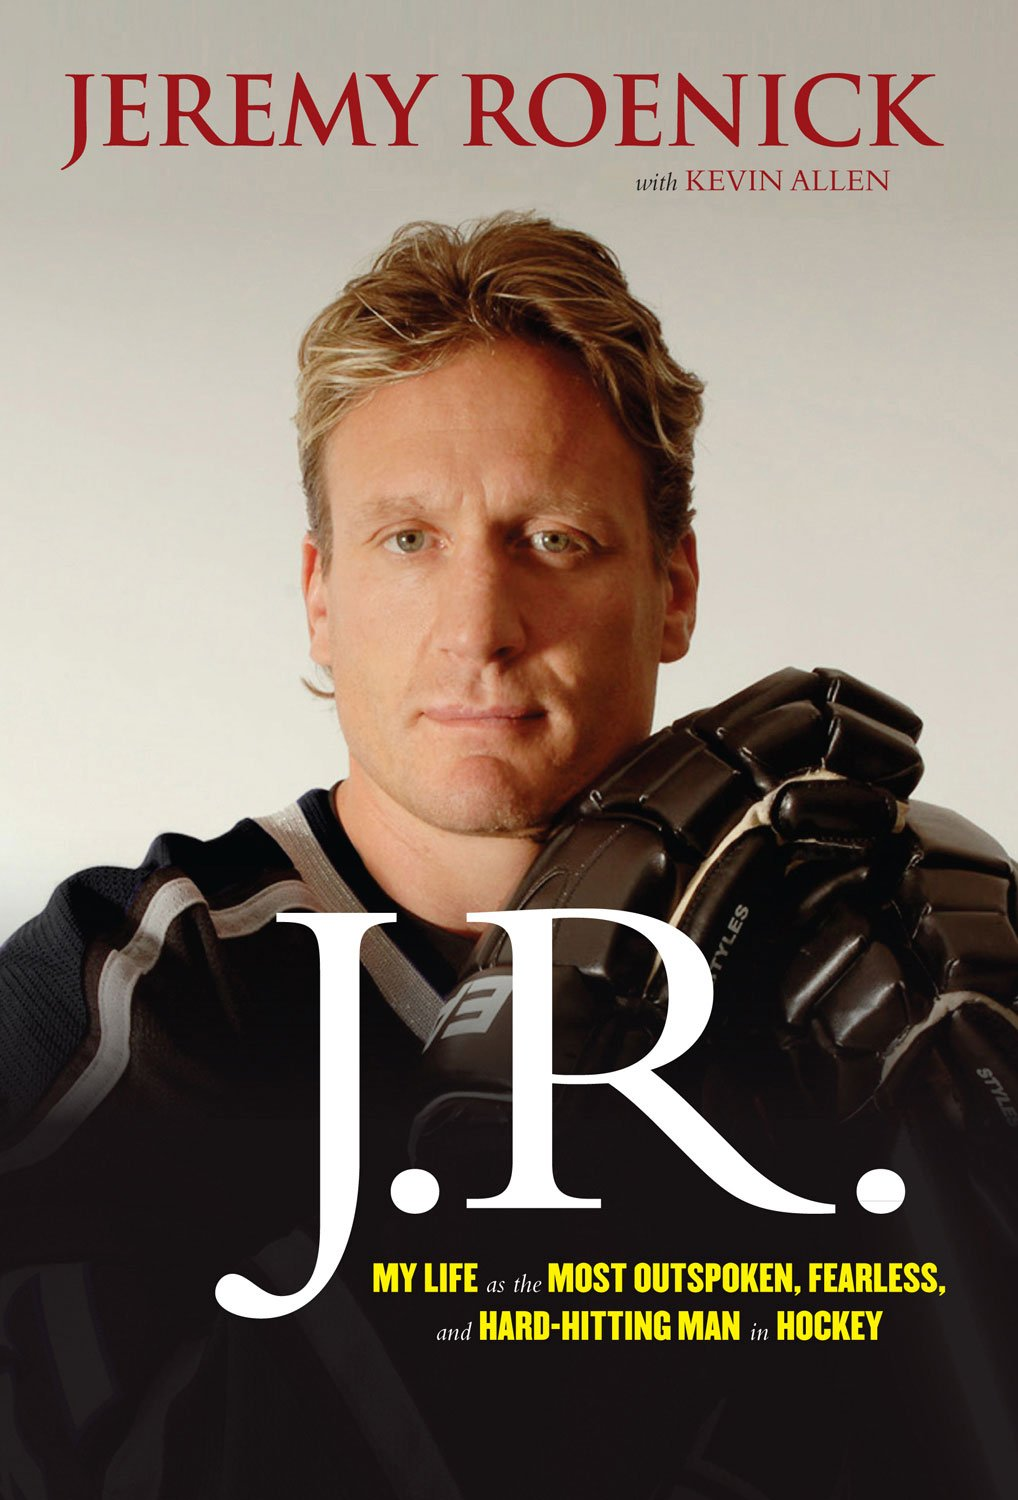 J.R.: My Life as the Most Outspoken, Fearless, and Hard-Hitting Man in Hockey ebook